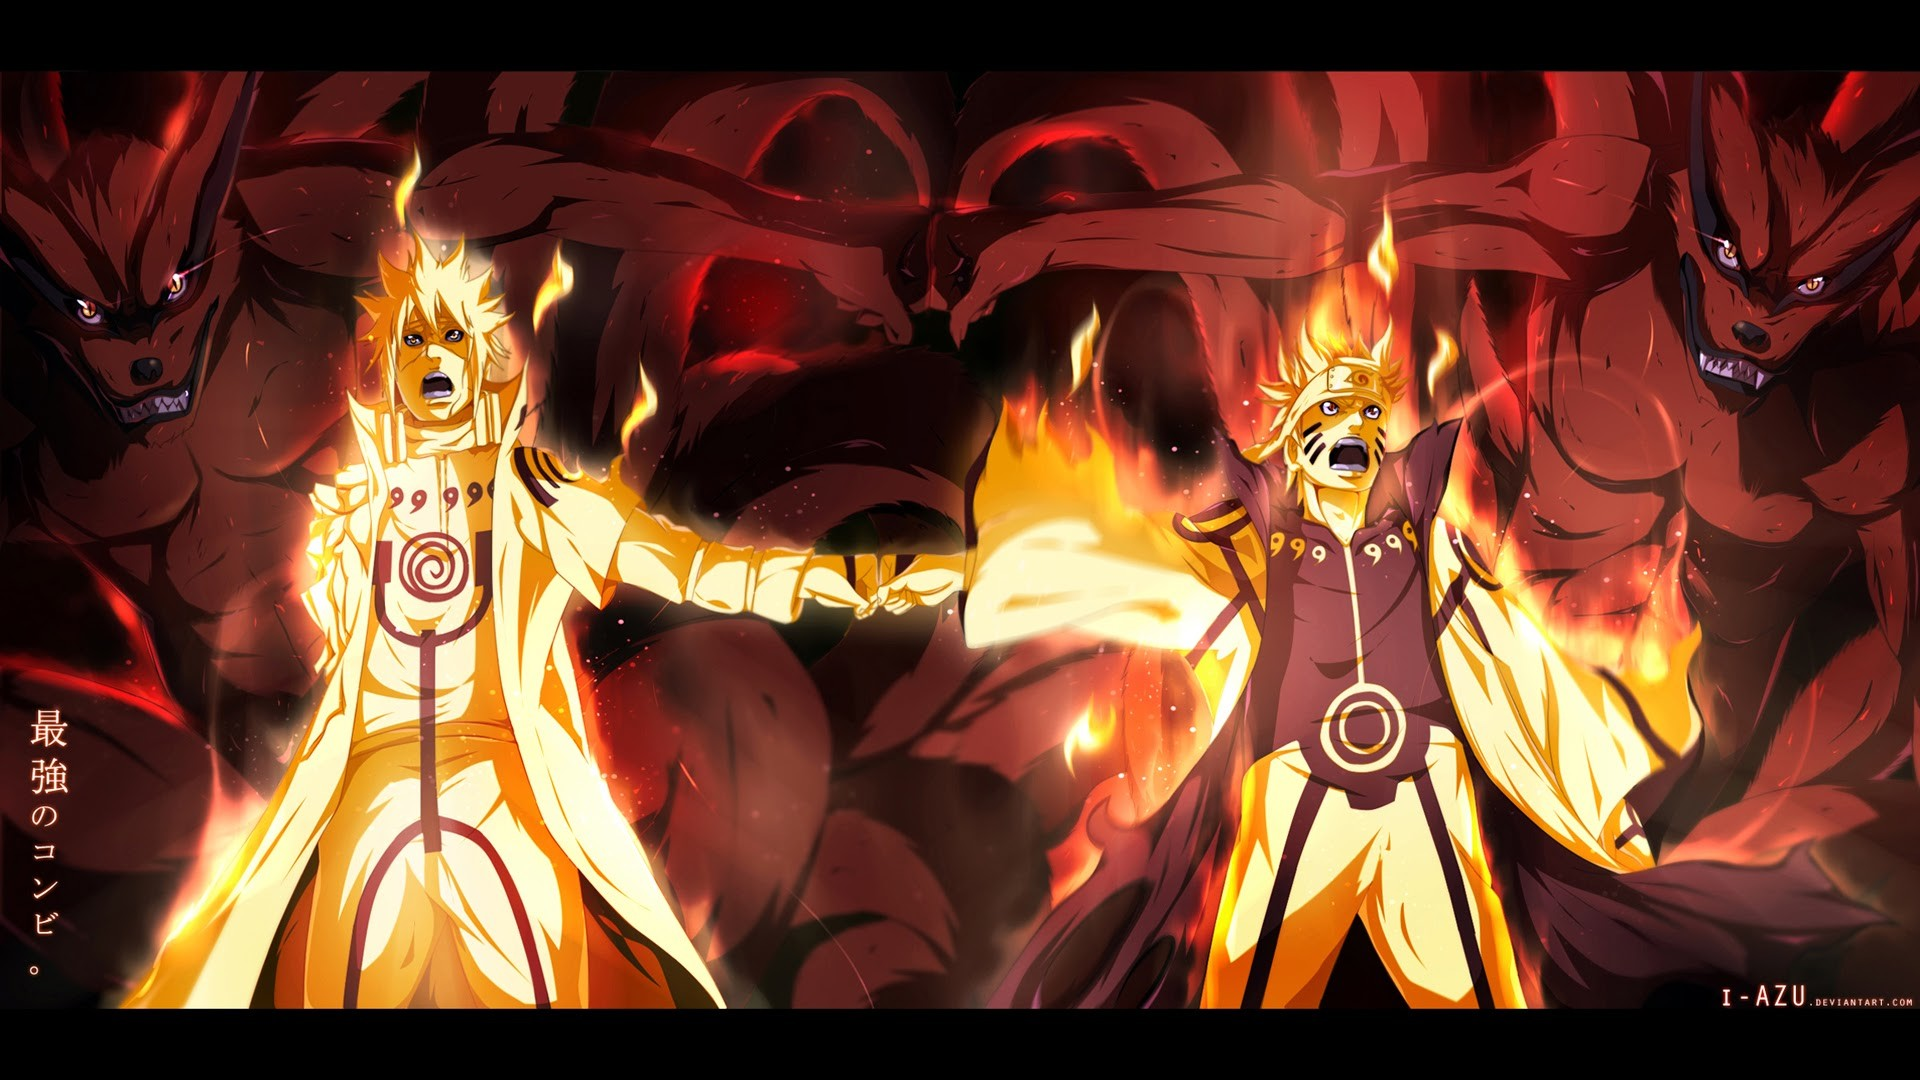 Best Wallpaper Naruto Tablet - 456556-best-naruto-1920x1080-wallpaper-1920x1080-for-tablet  Image.jpg